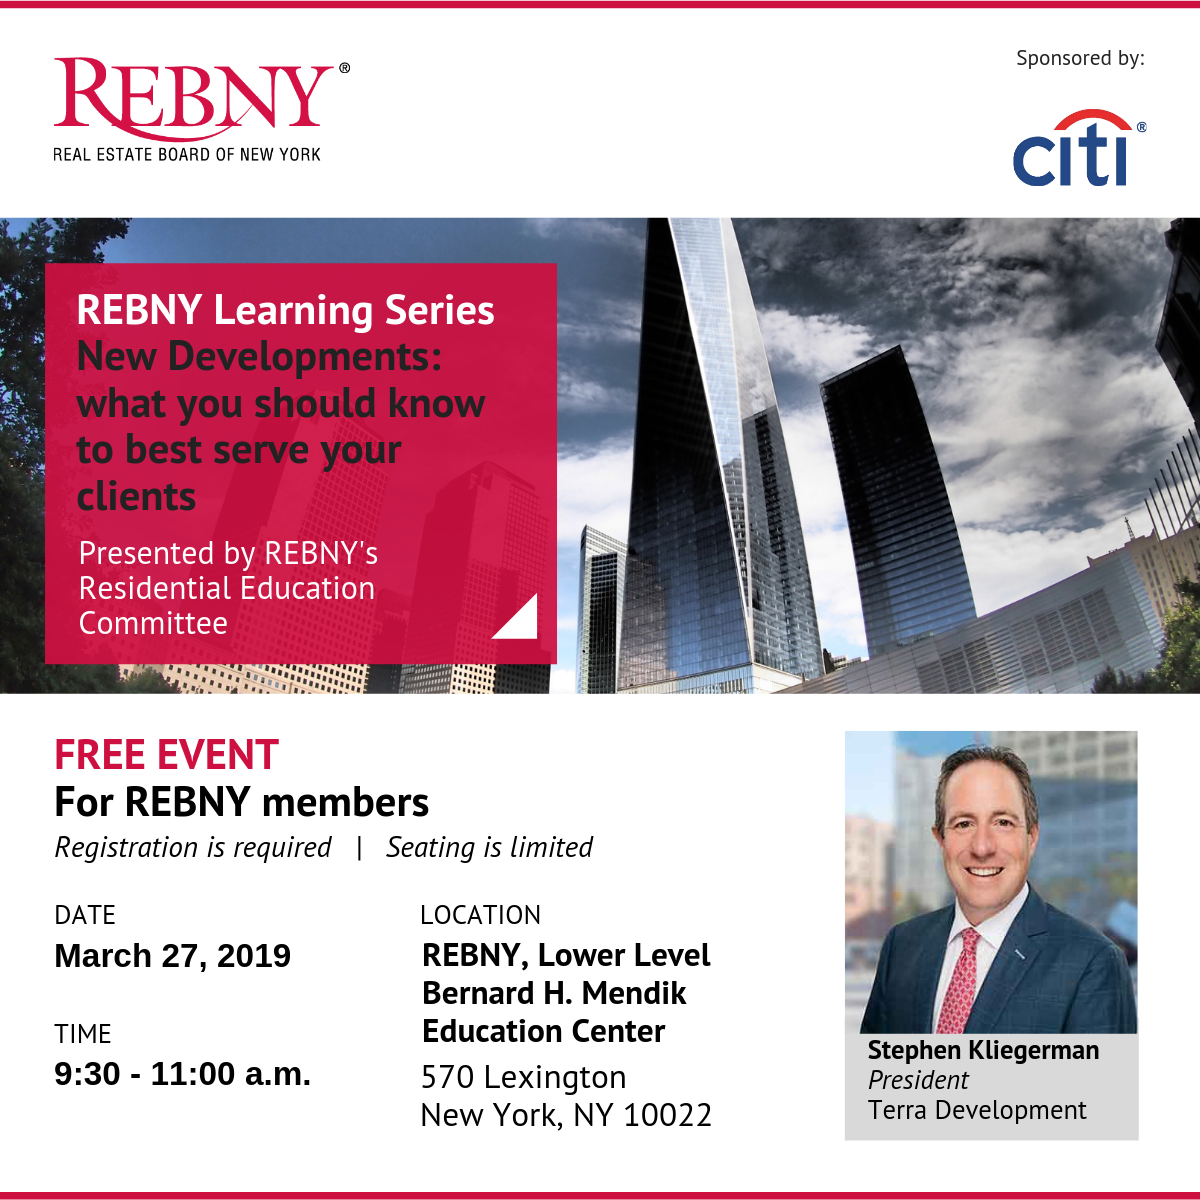 REBNY Learning Series with Stephen Kliegerman - All You Need to Know About New Developments